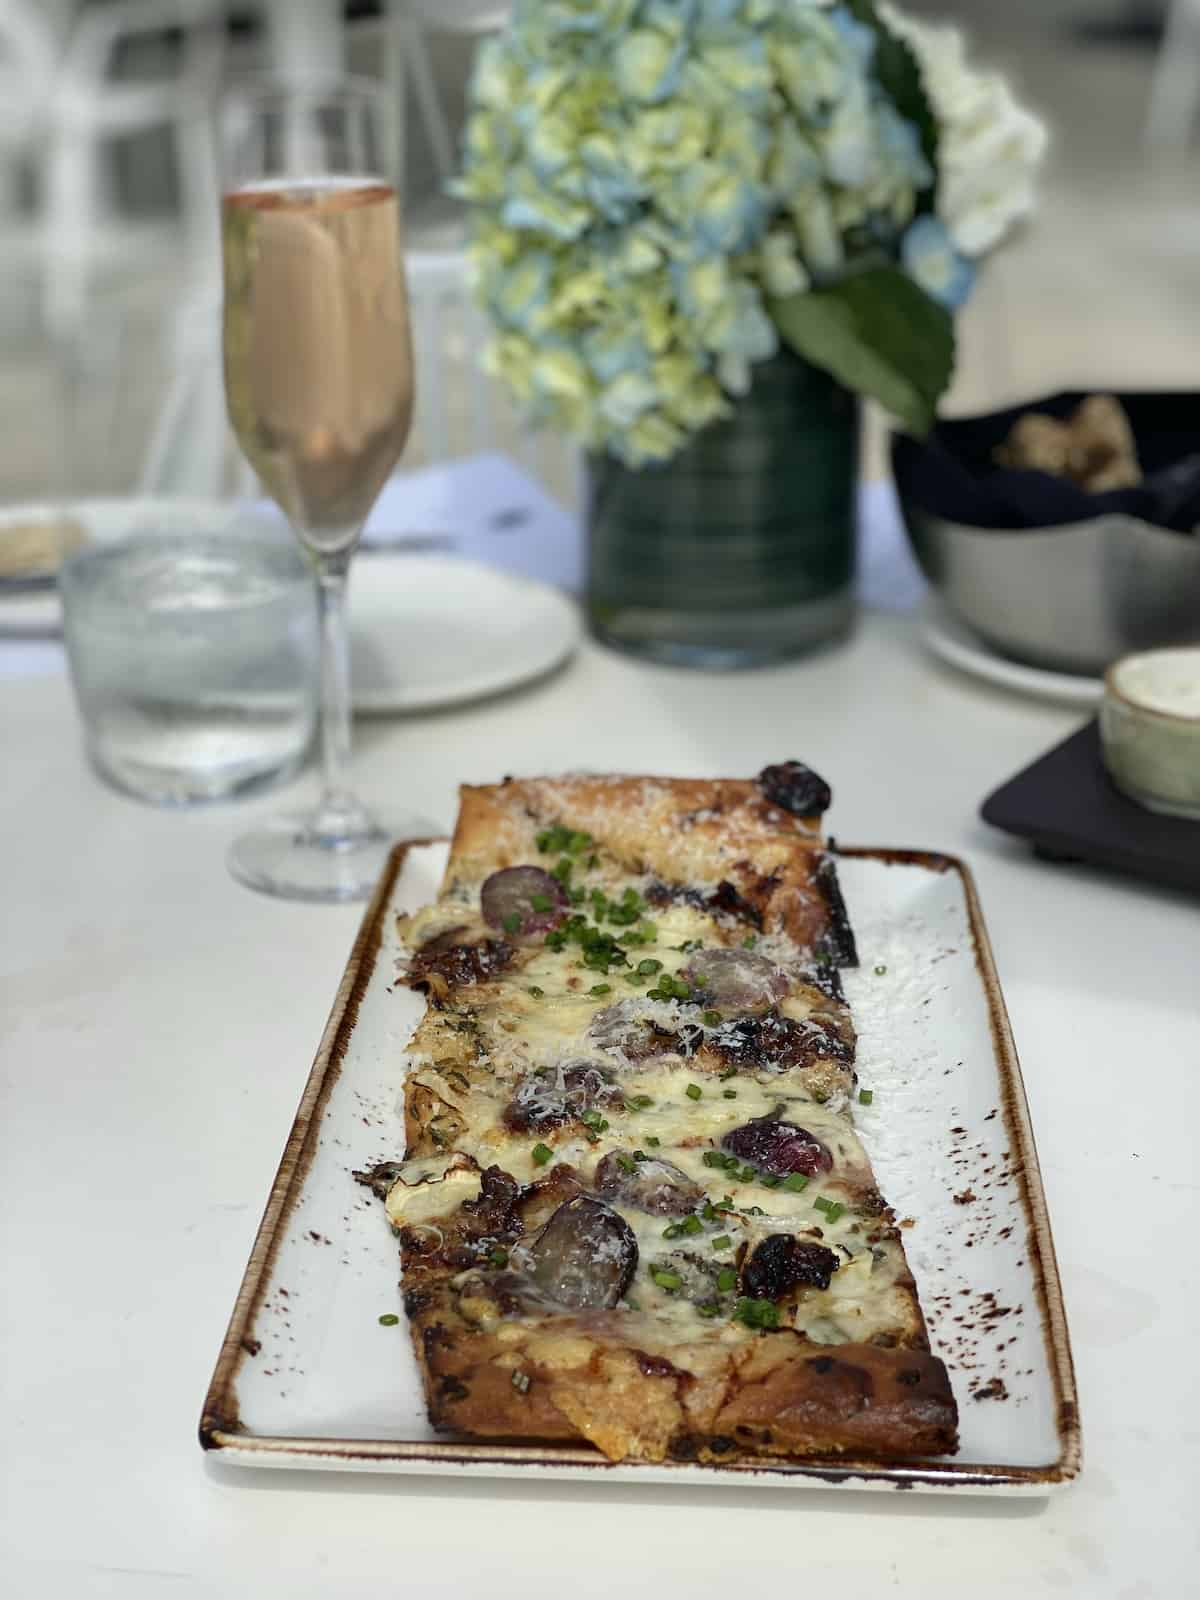 Flatbread with cheese and grapes on white stone platter with glass of Prosecco.